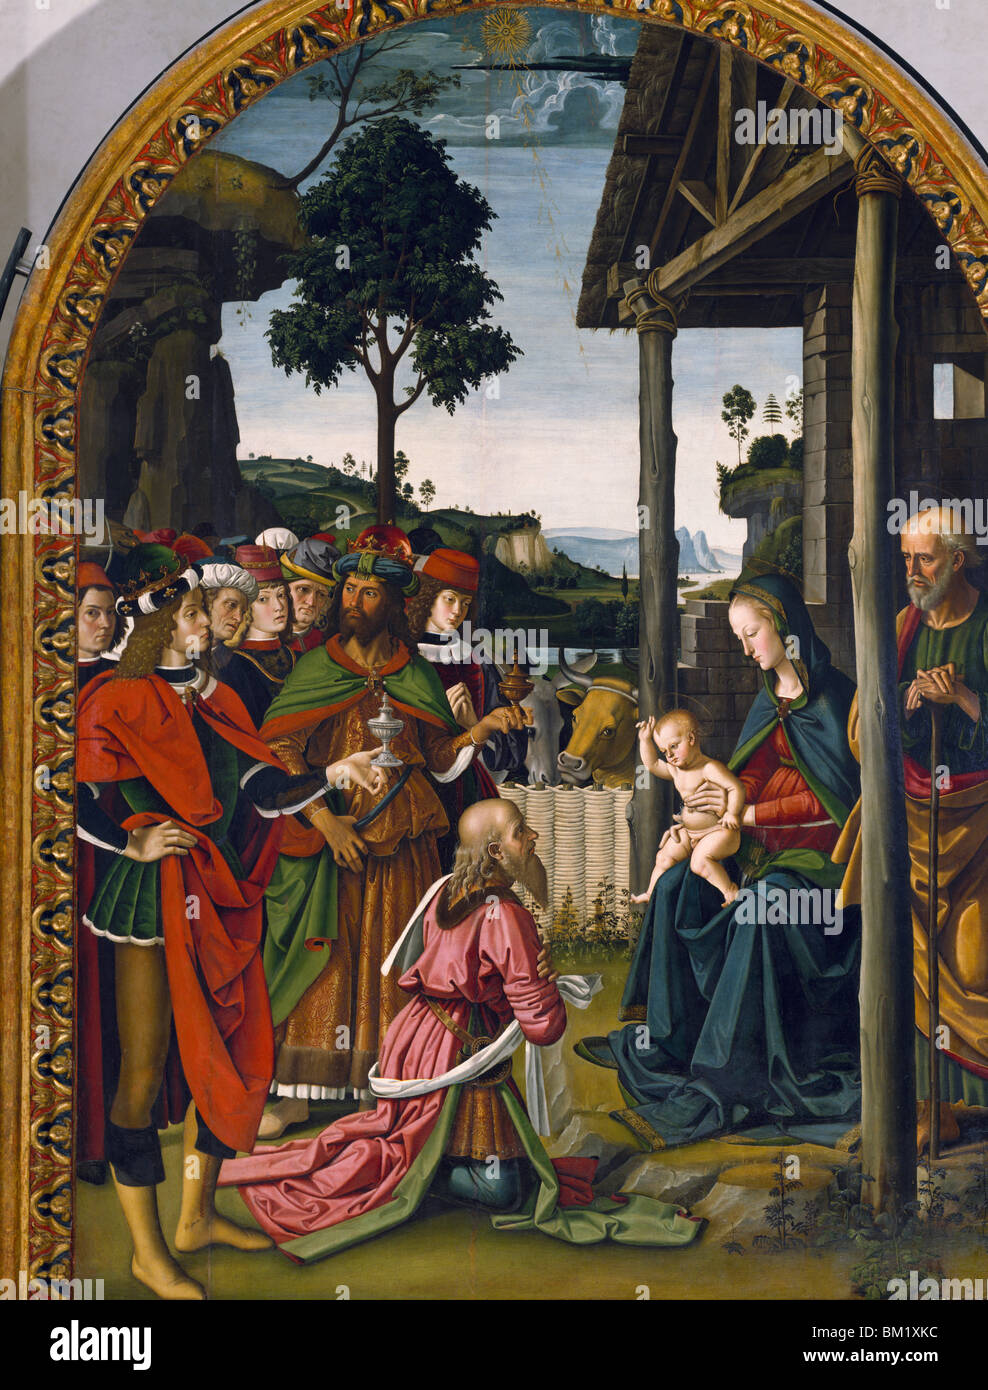 Adoration of the Magi by Pietro Perugino,  tempera on wood,  (Circa 1450-1523),  Italy,  Perugia,  Pinacoteca Nazionale - Stock Image